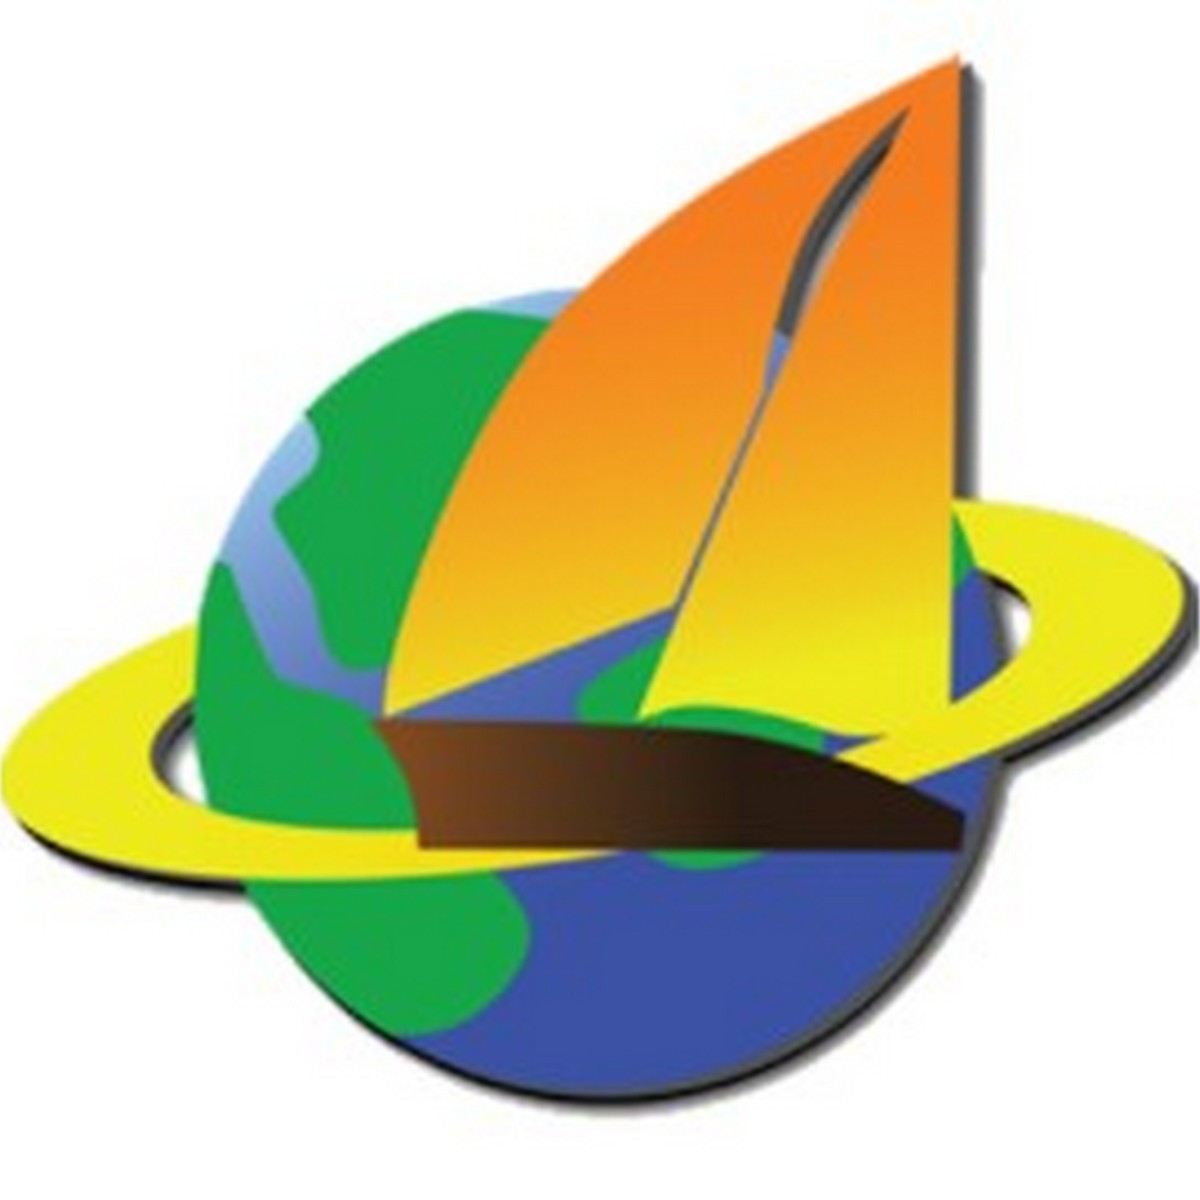 Ultrasurf for Windows